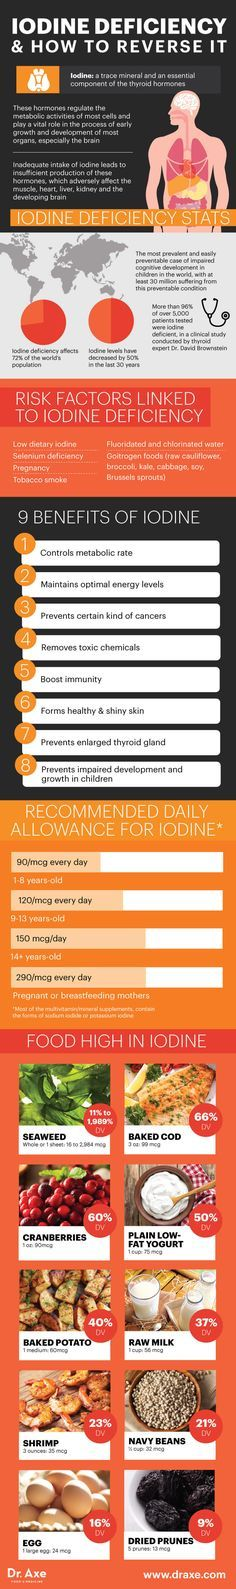 Hypothyroidism Diet - The Iodine Deficiency Epidemic — How to Reverse It for Your Health. Empowering people to take control of their health. Thyrotropin levels and risk of fatal coronary heart disease: the HUNT study. Health Facts, Health And Nutrition, Health And Wellness, Health Fitness, Health Quotes, Fitness Tips, Foods With Iodine, Hypothyroidism Diet, Thyroid Health